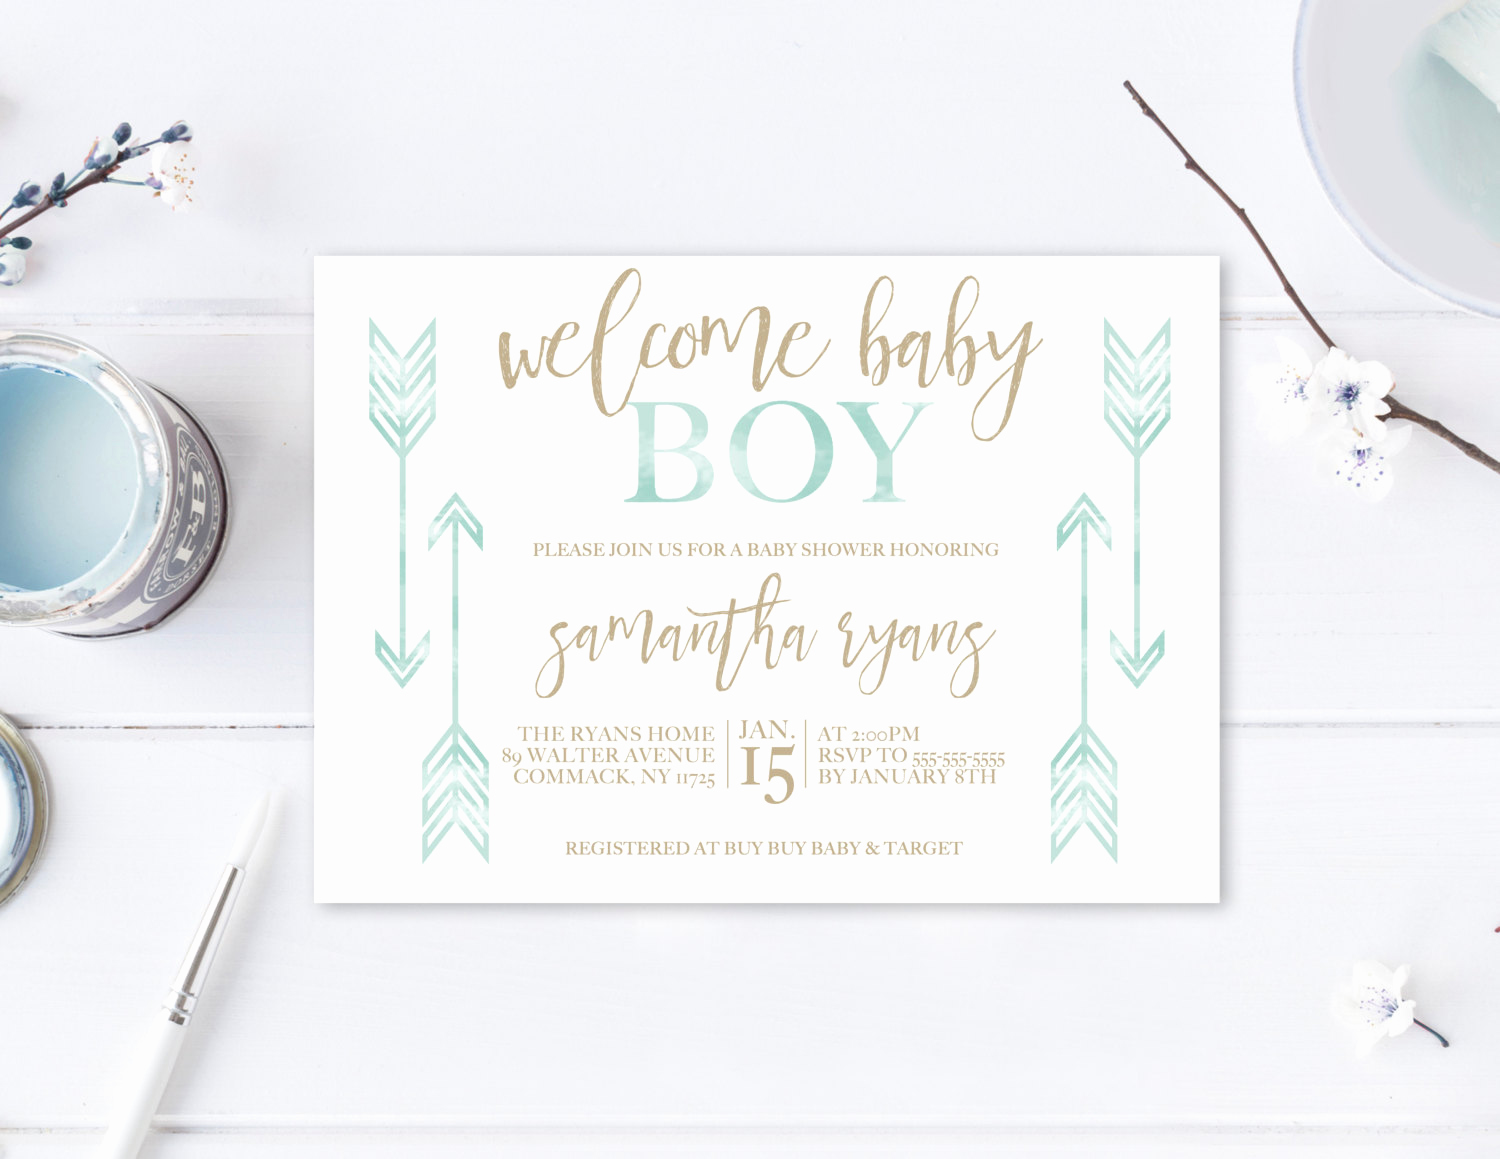 Boho Baby Shower Invitation Awesome Baby Shower Invitation Boho Baby Shower Invitations Boy Baby